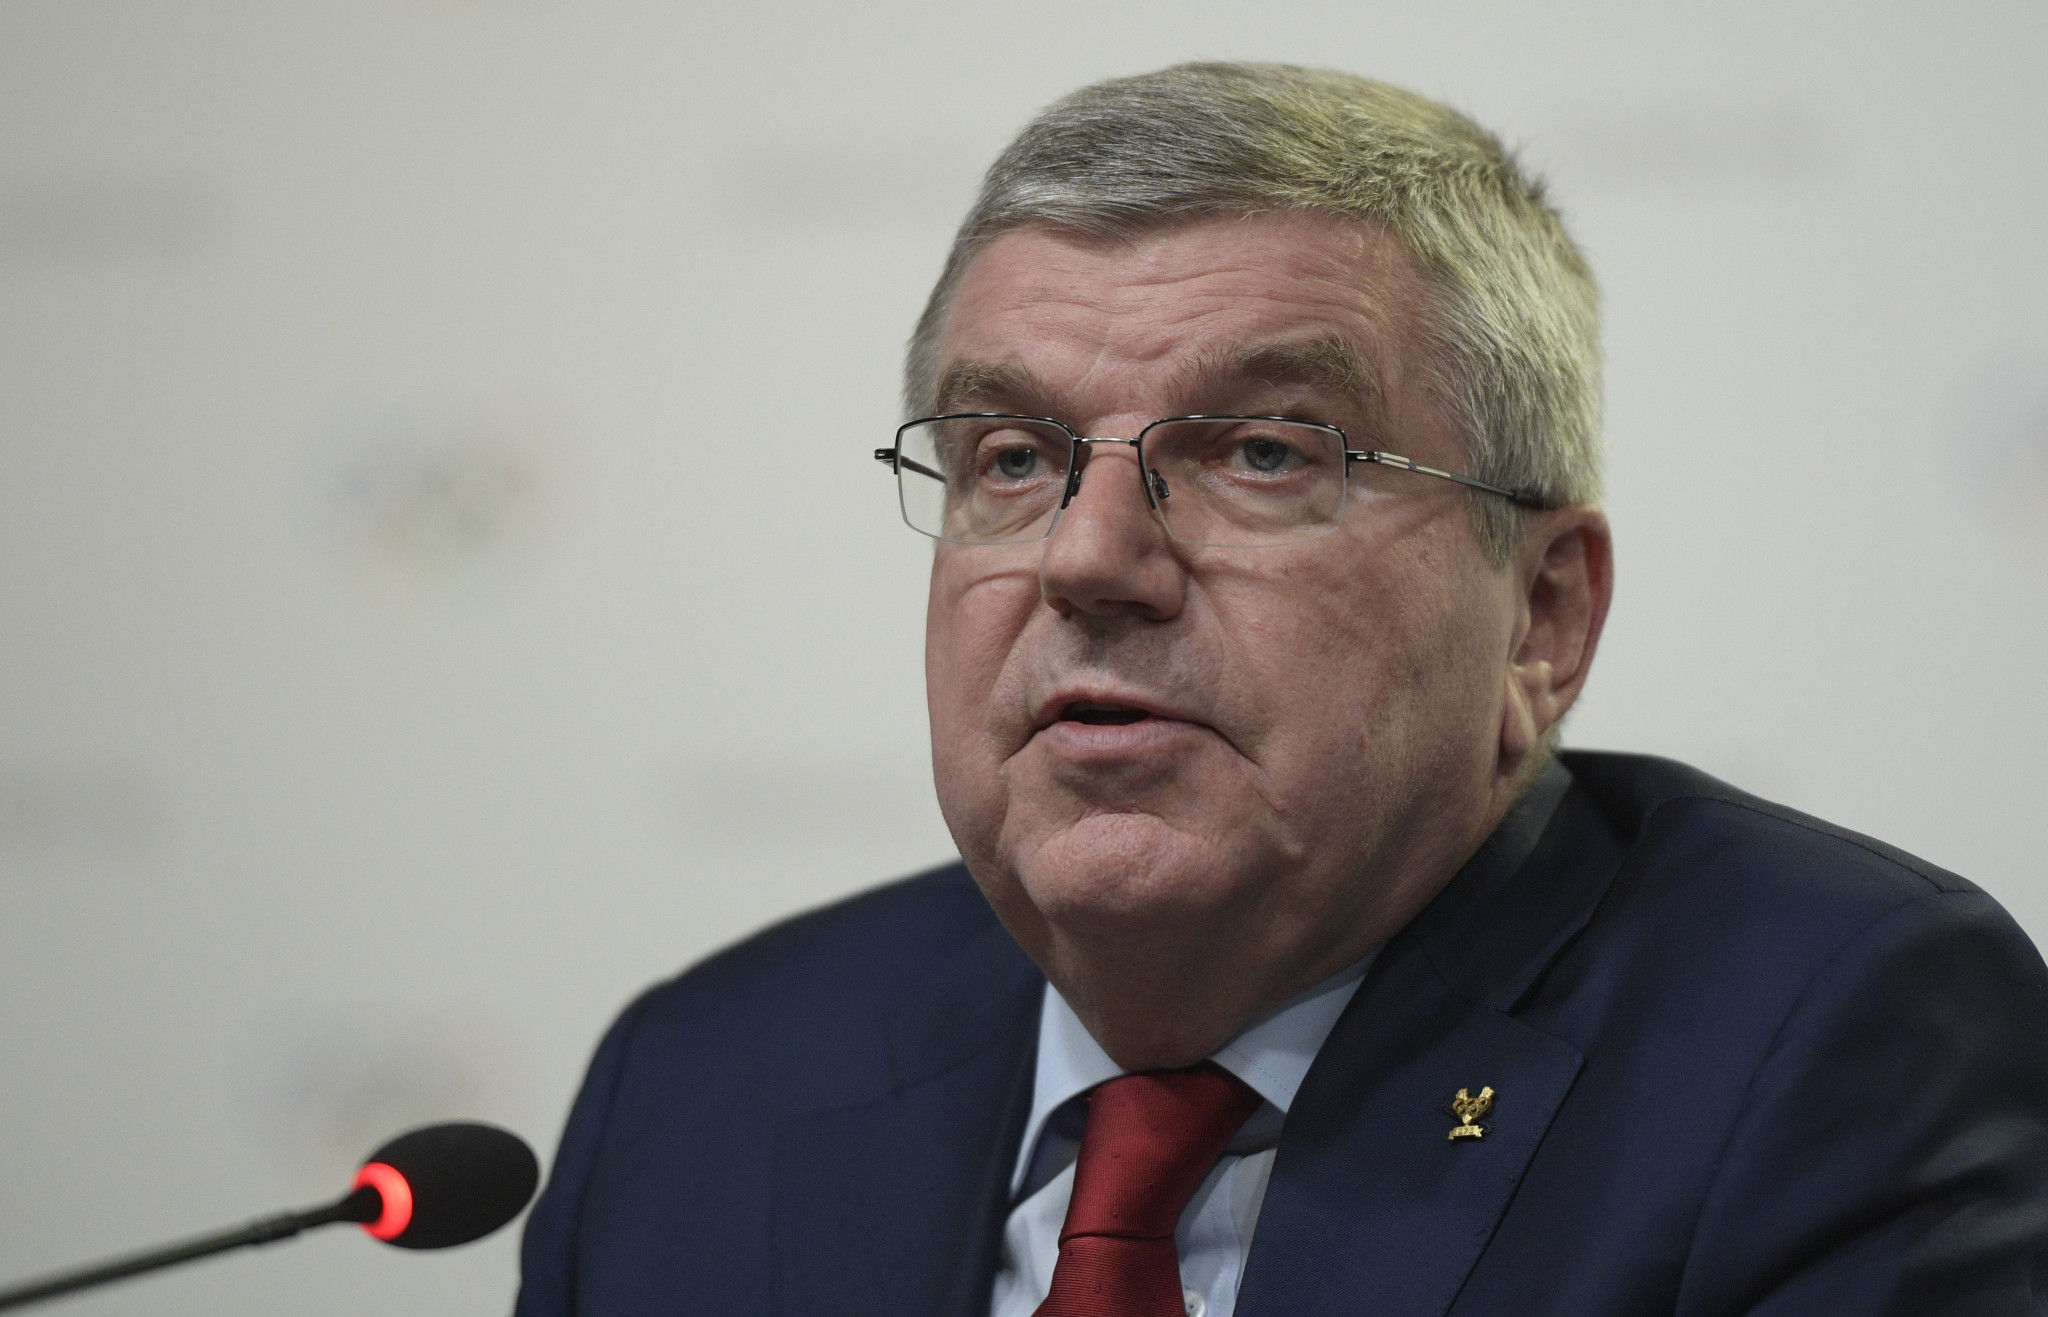 IOC President Thomas Bach has previously claimed there is